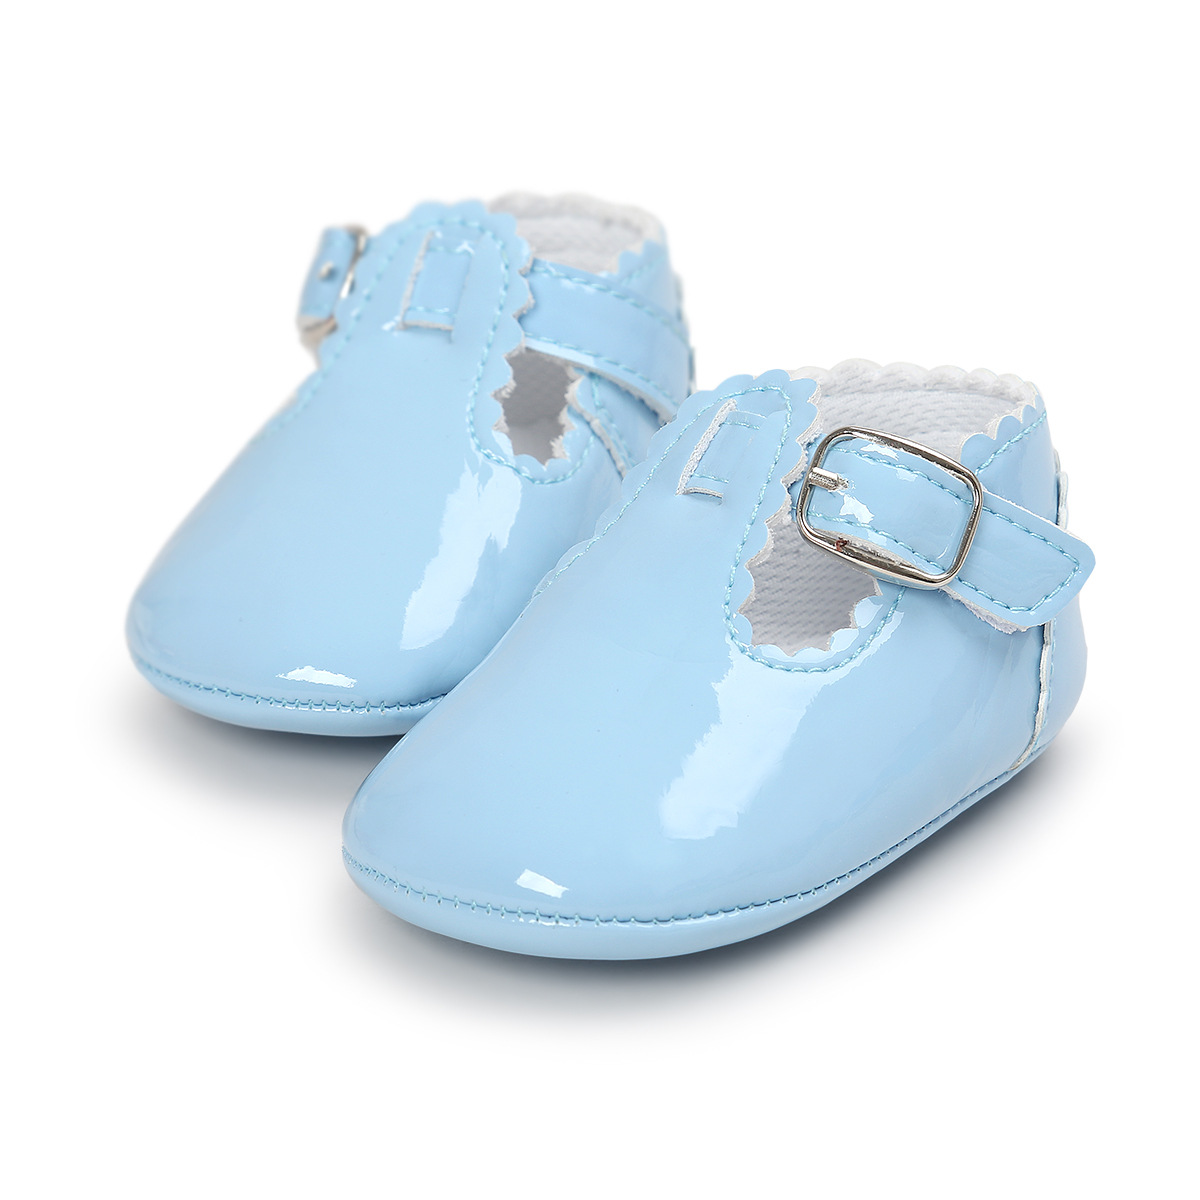 Newborn Sky Blue Baby Shoes Bright PU Leather Baby Toddler Girl Shoes Baby Infant Moccasins Shoes First Walker